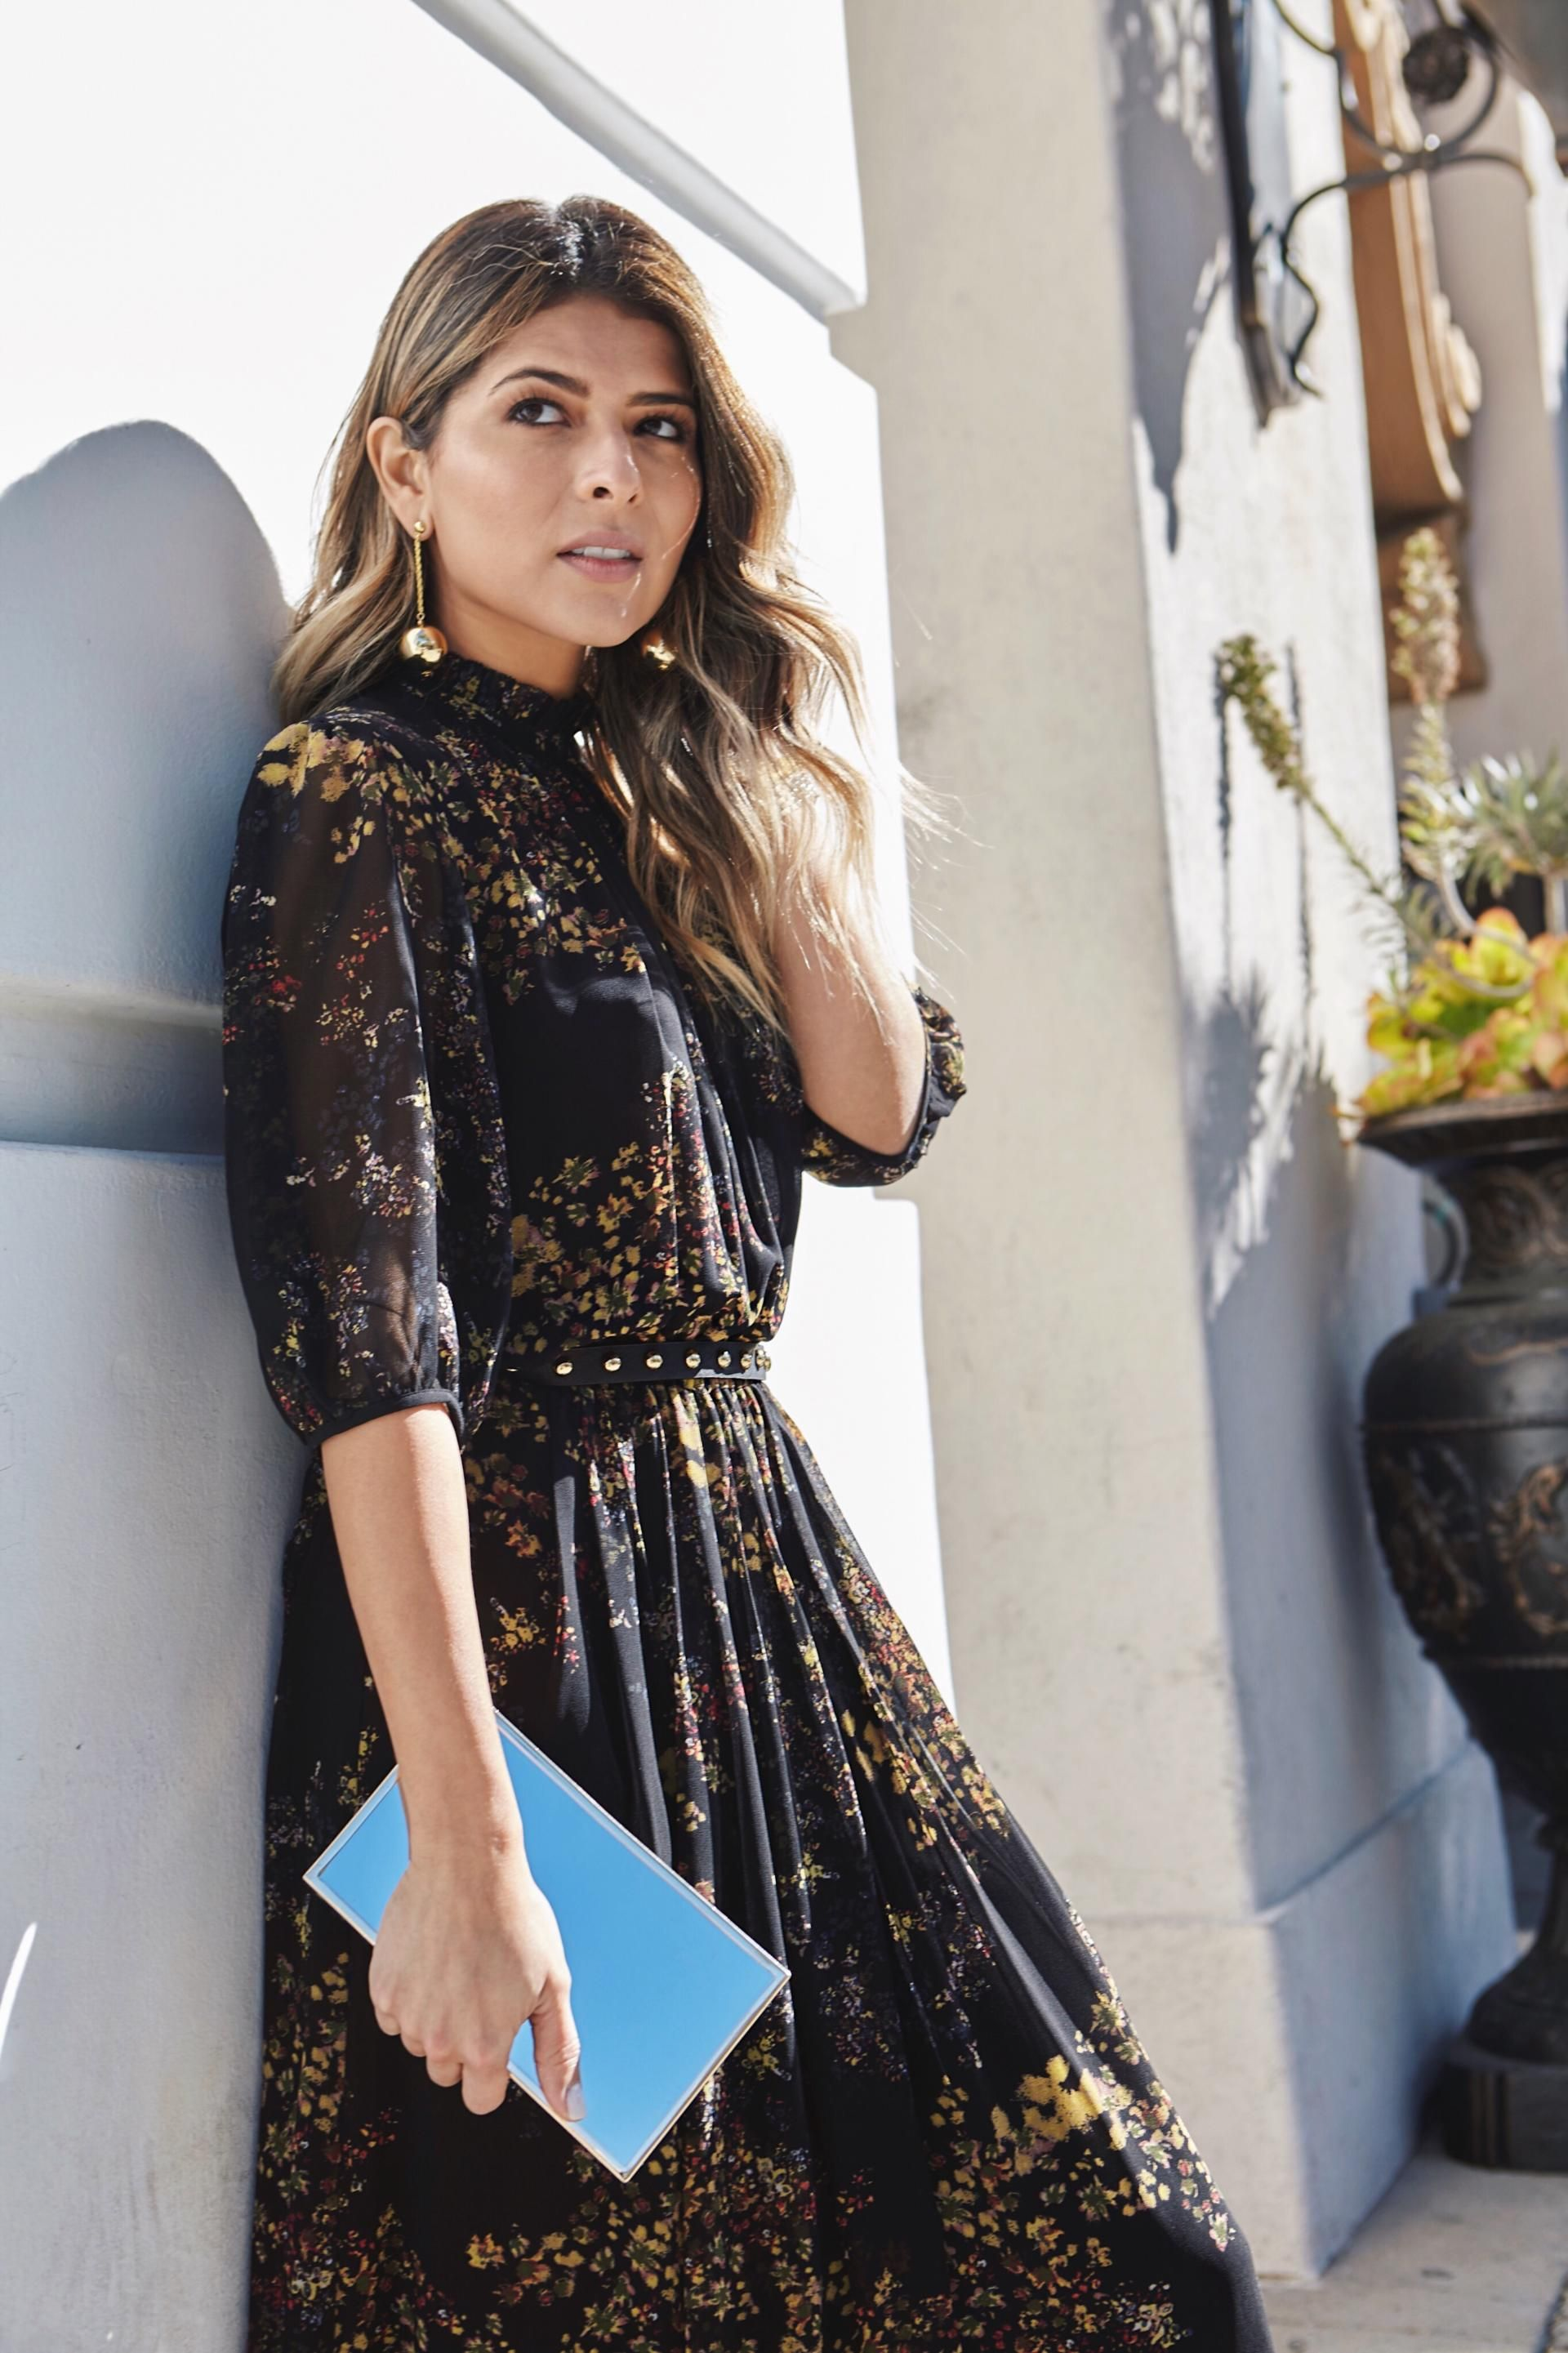 7 Chic Long Dresses To Wear To A Wedding Pam Hetlinger The Girl